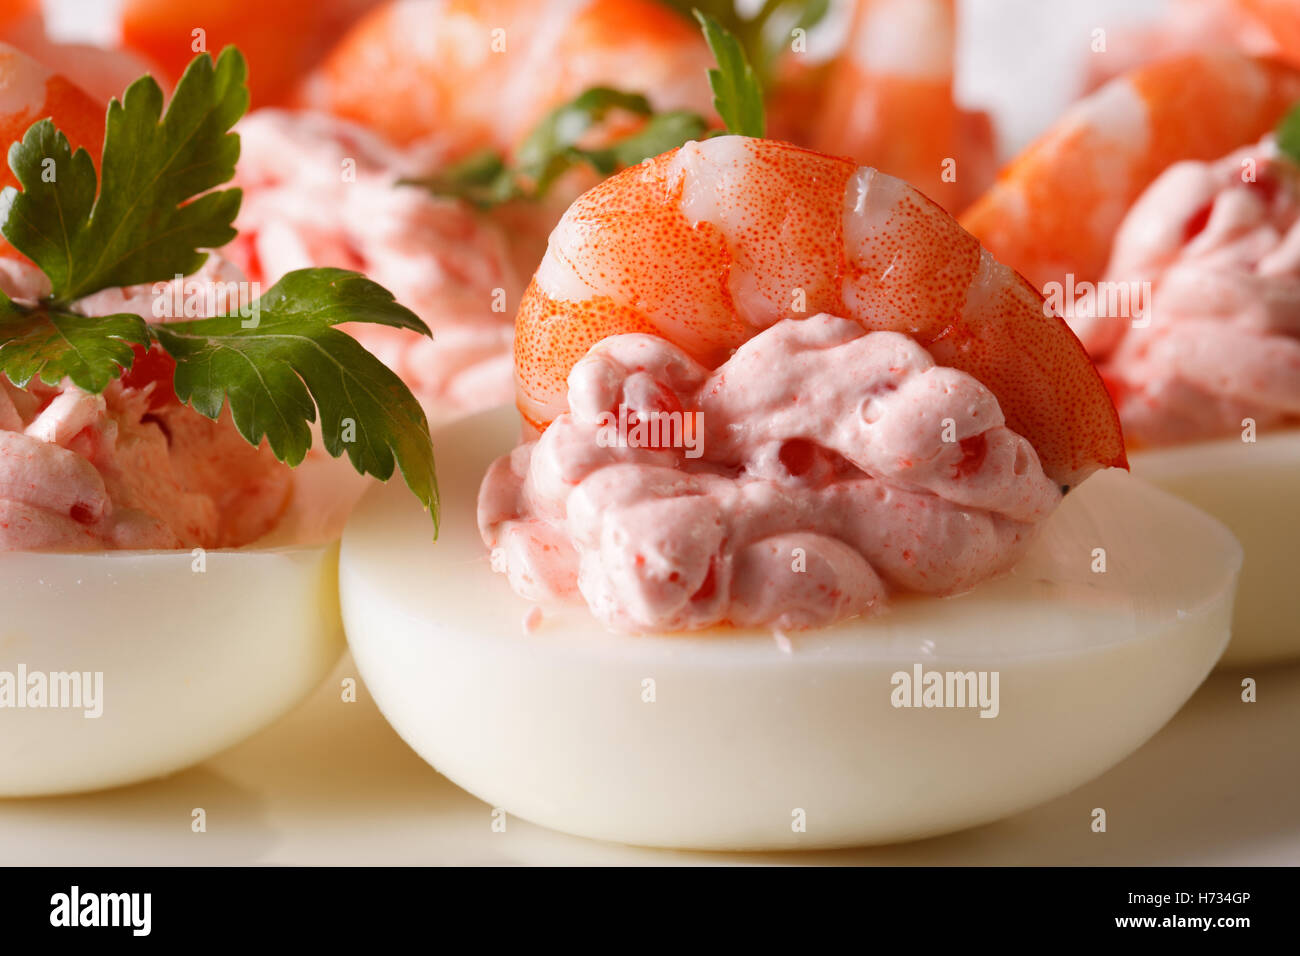 eggs stuffed with shrimp, cheese and caviar macro on a plate. horizontal - Stock Image